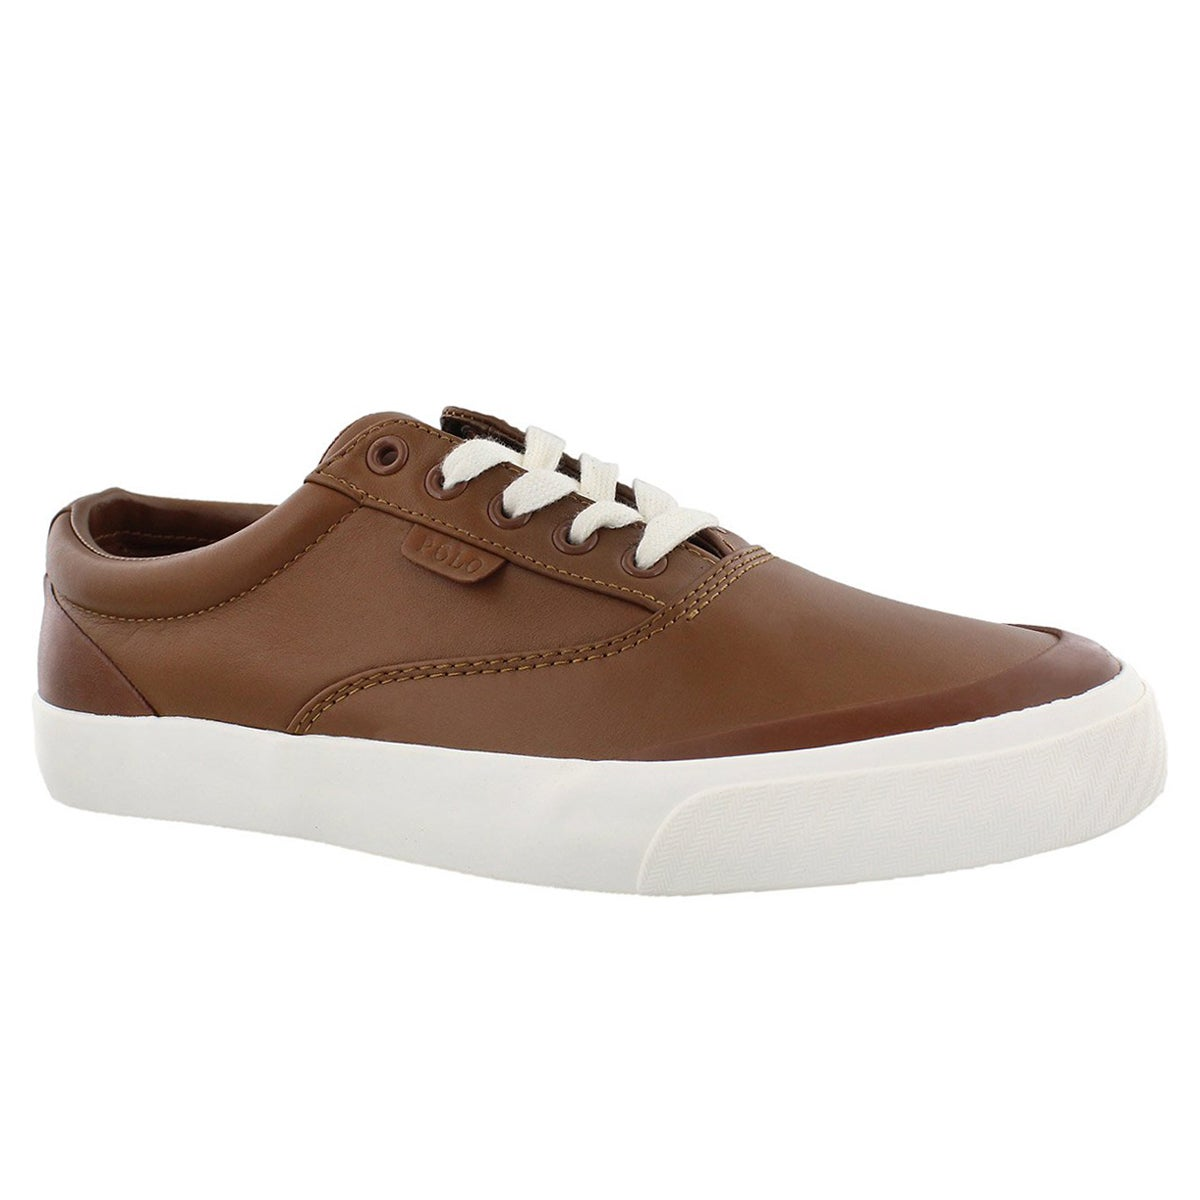 Men's IZZAH deep tan lace up sneakers